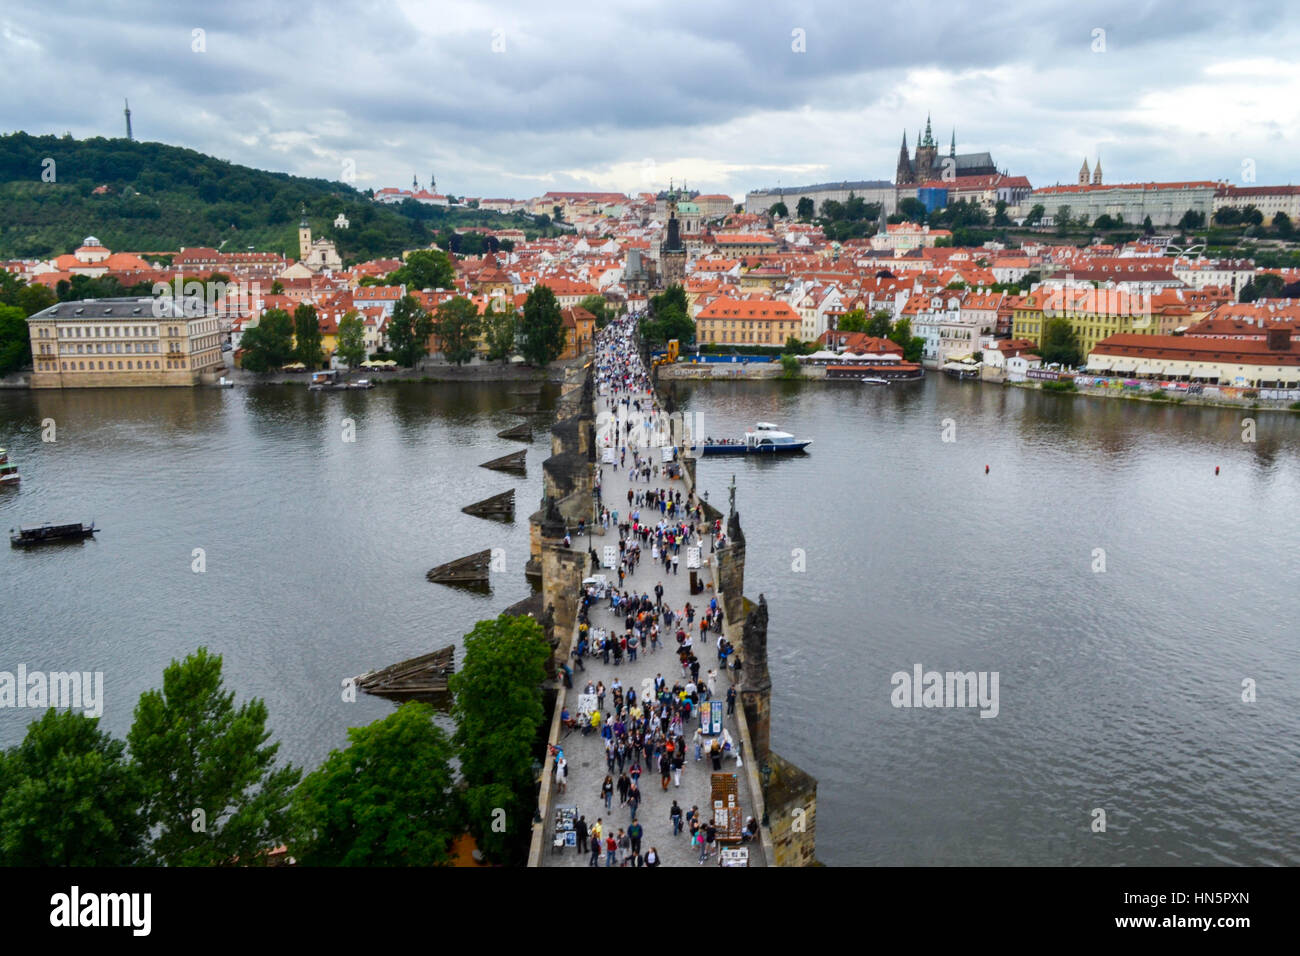 View from Old Town Tower of Charles Bridge (Karlův most) in Prague Stock Photo